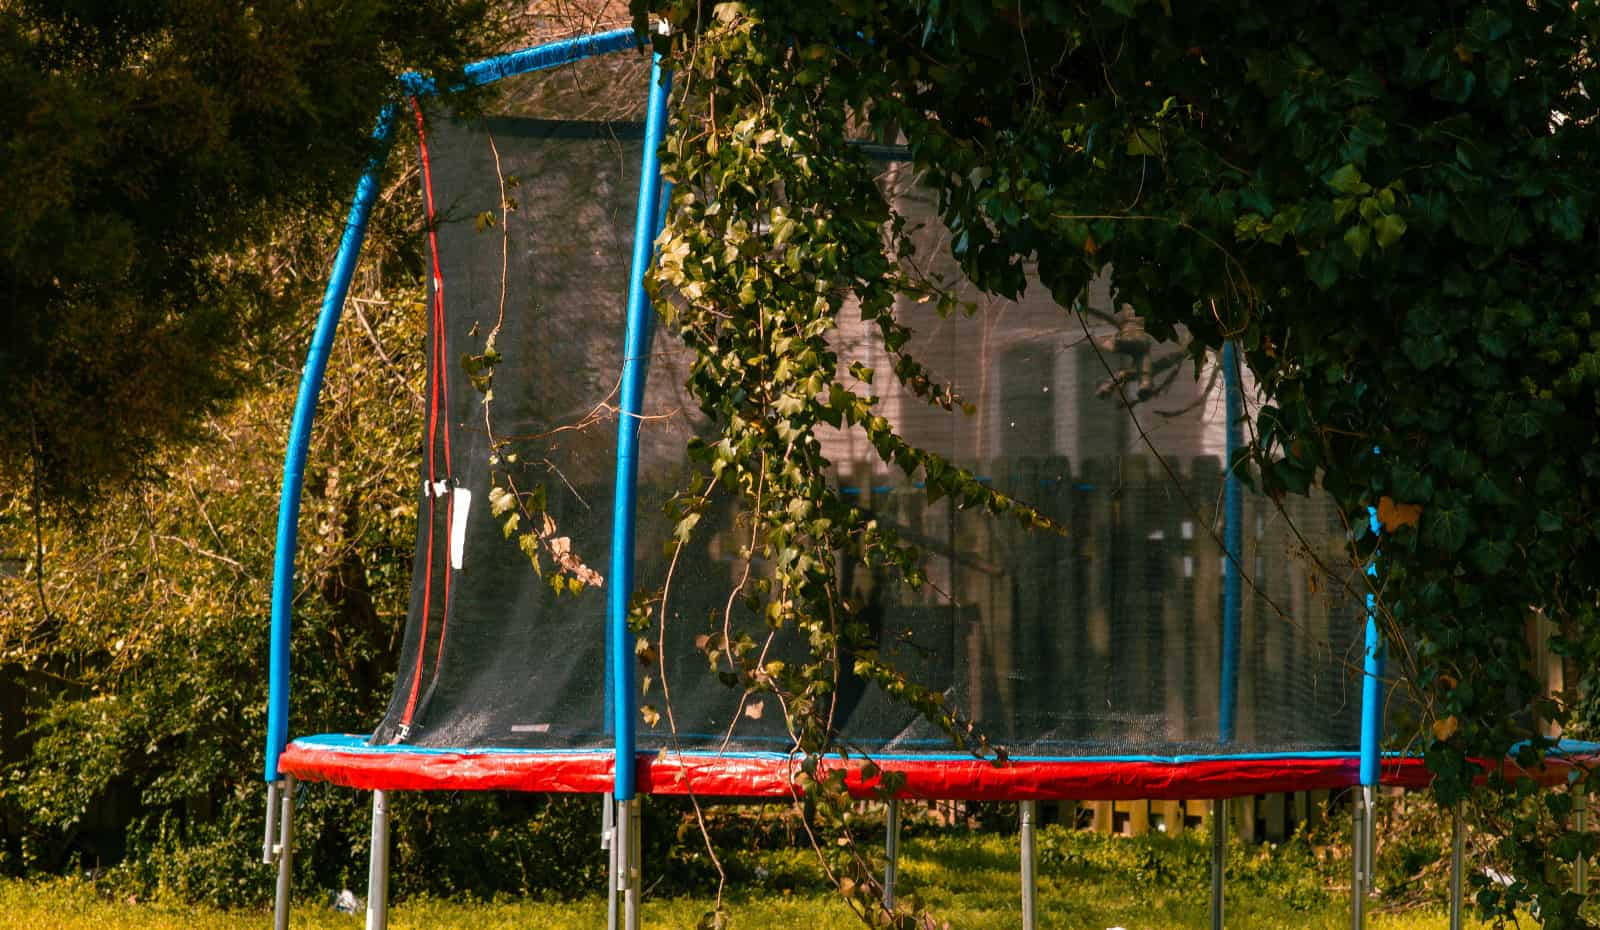 Trampoline Parks And Personal Injury Claims